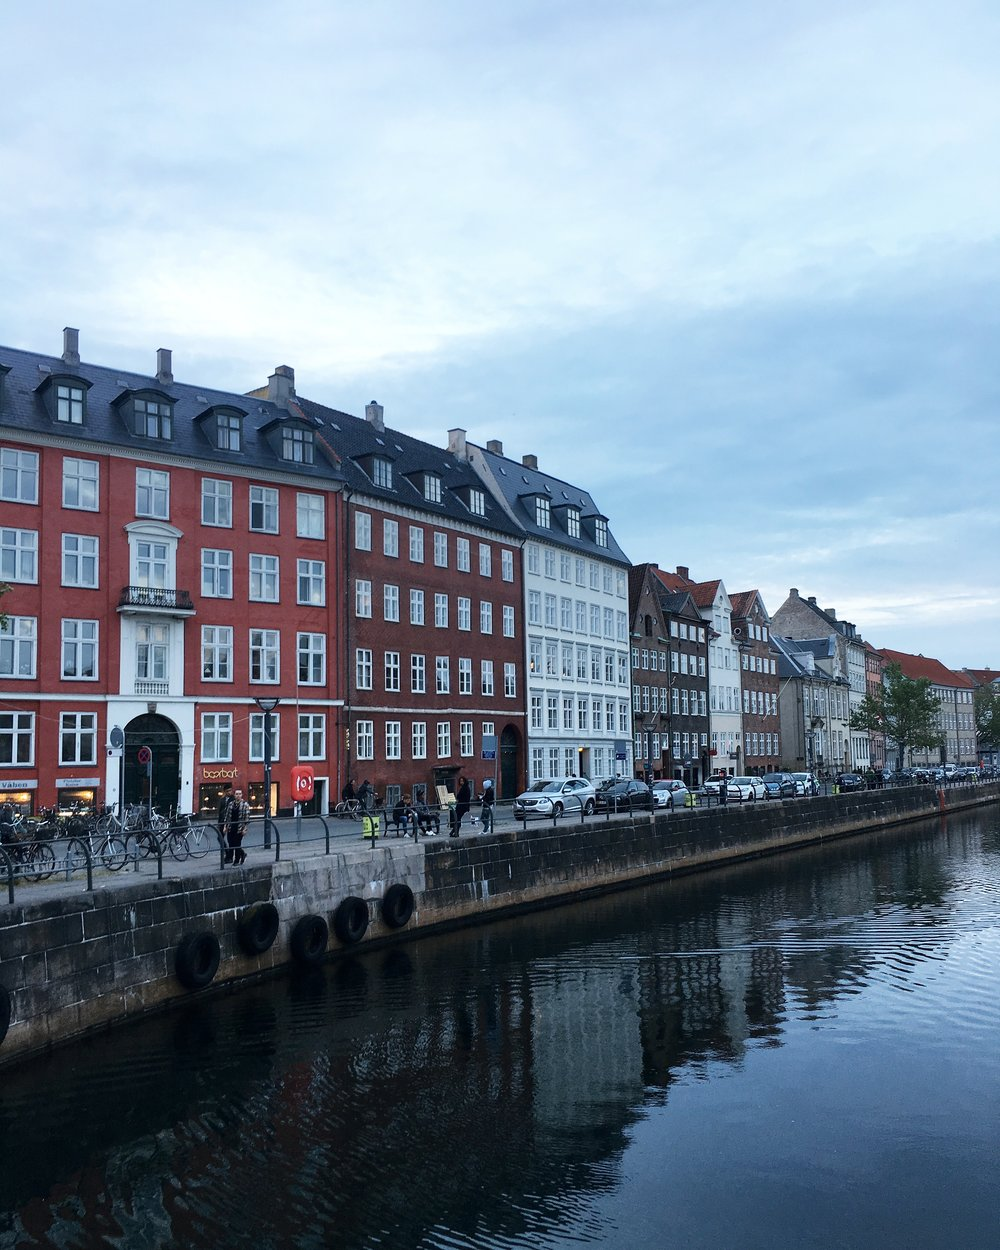 Every building in Copenhagen is beautiful. Every street is filled with wonderful people, and bikes.